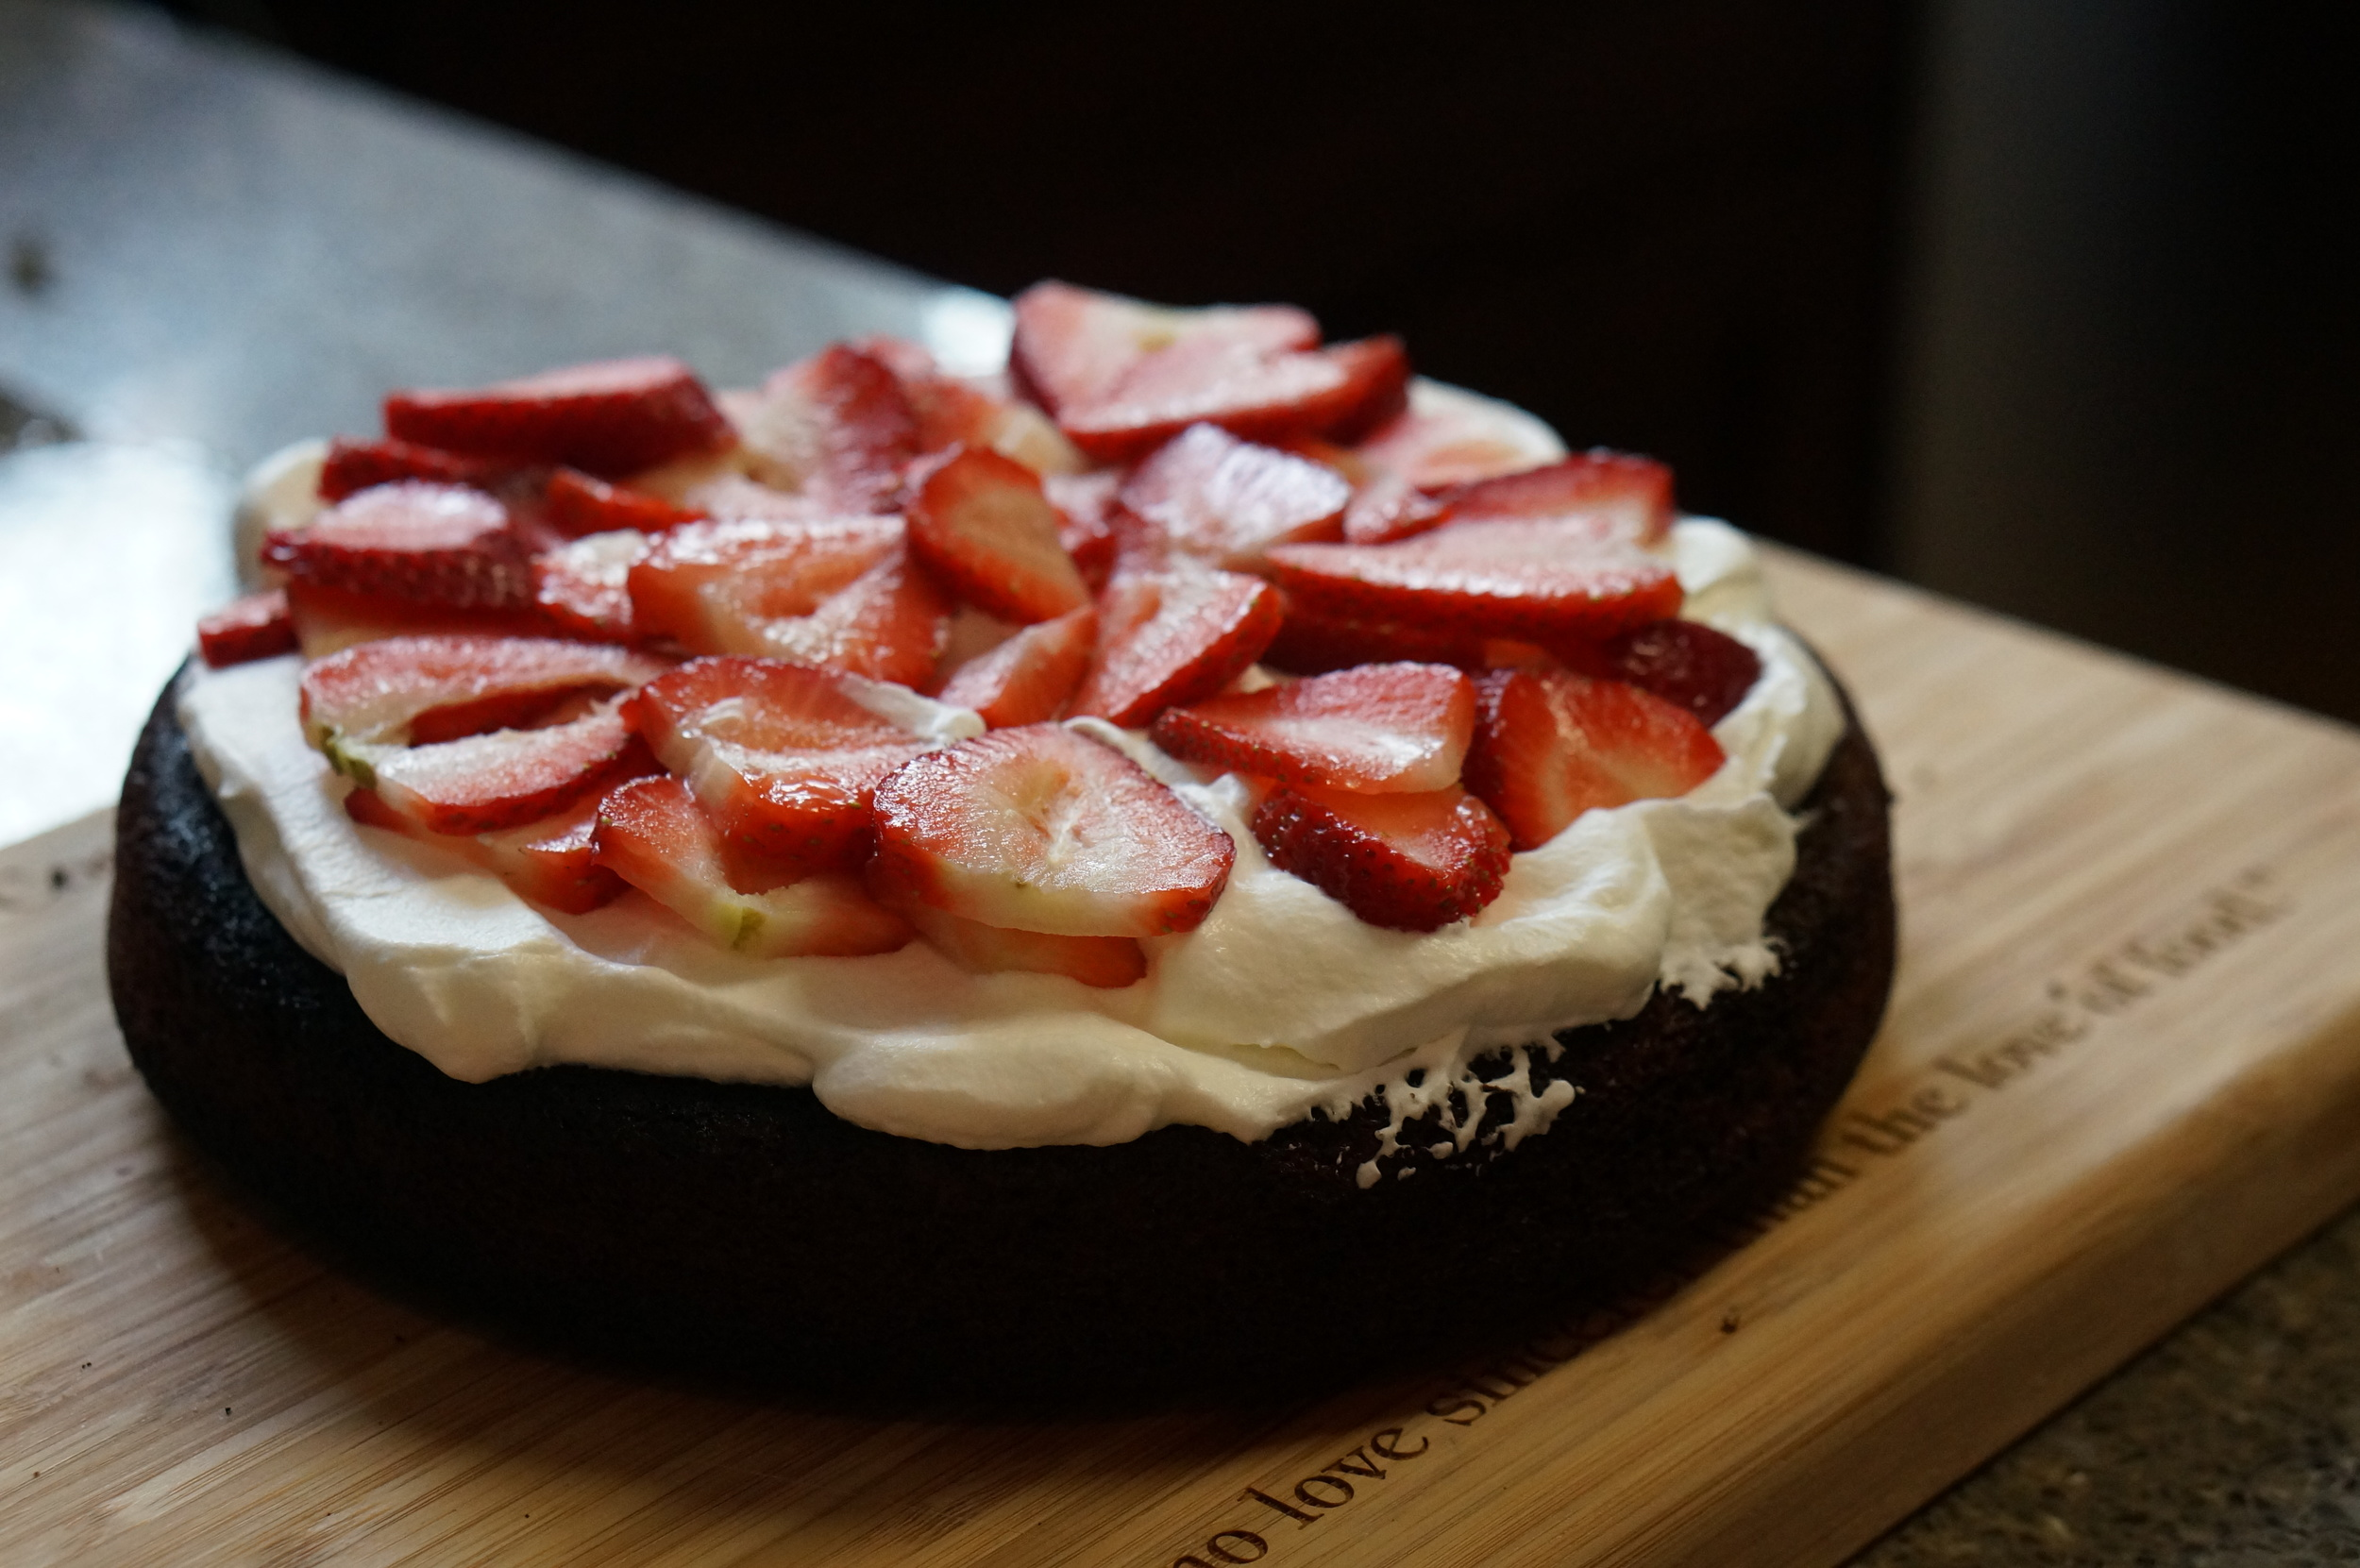 Chocolate Cake Filled with Whipped Cream and Fresh Strawberries